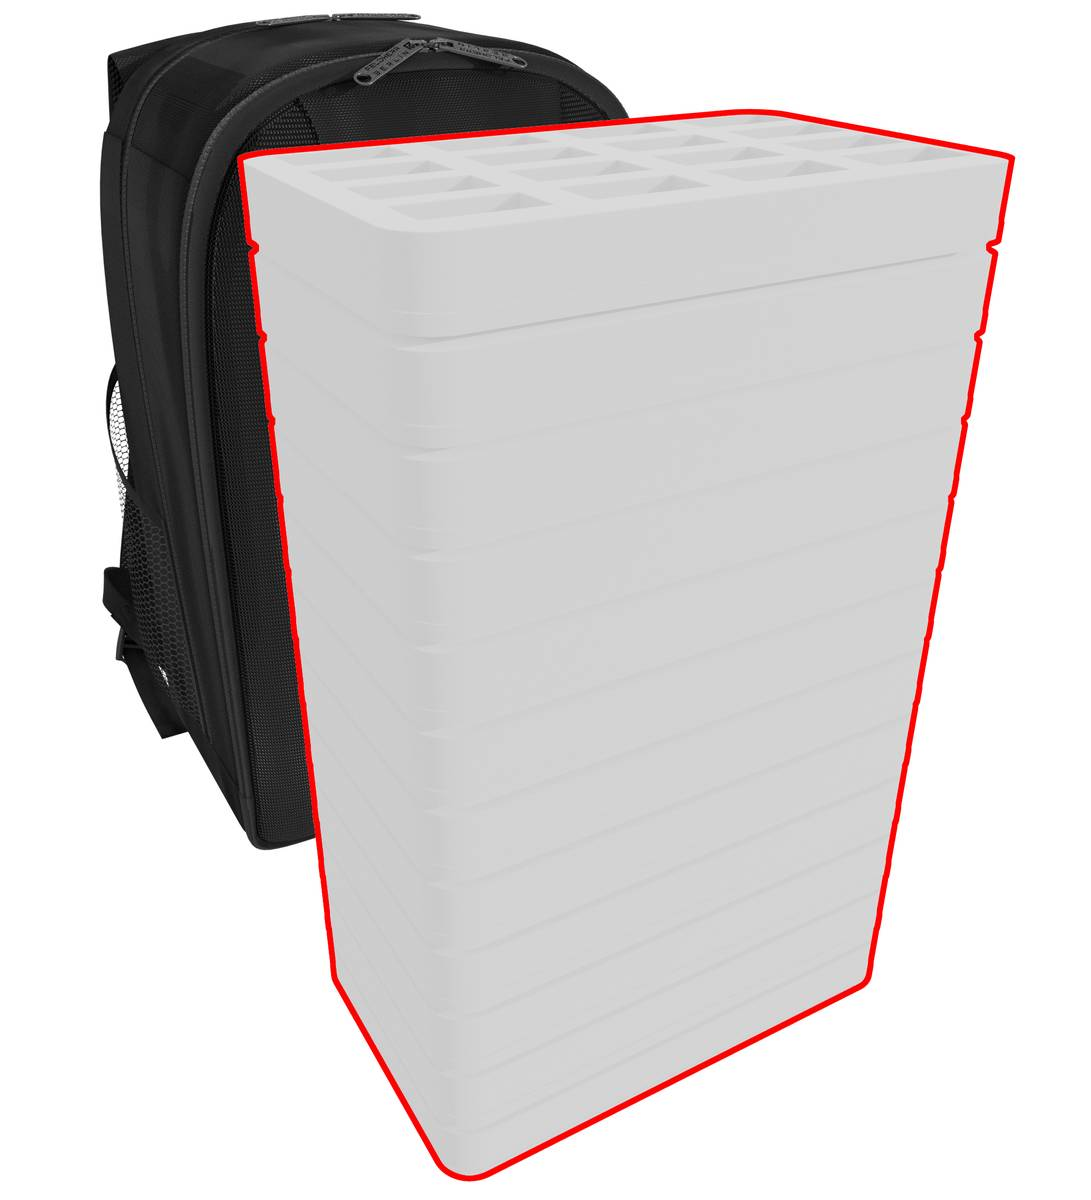 Feldherr BACKPACK custom - 420 mm Half-Size foam trays of your choice